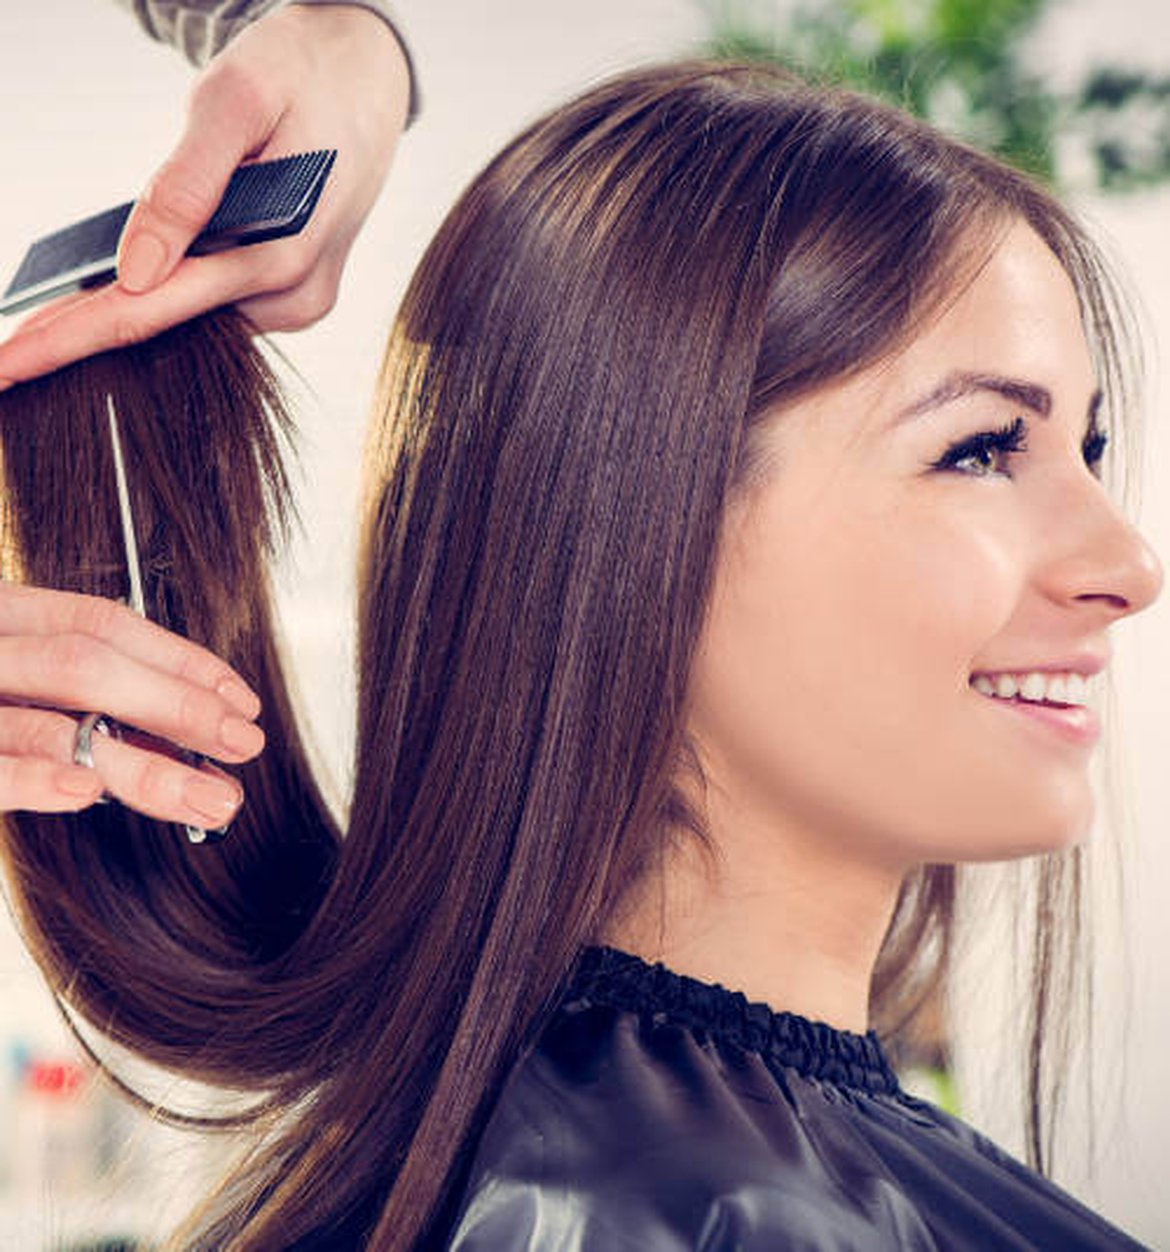 Hair Services for Women